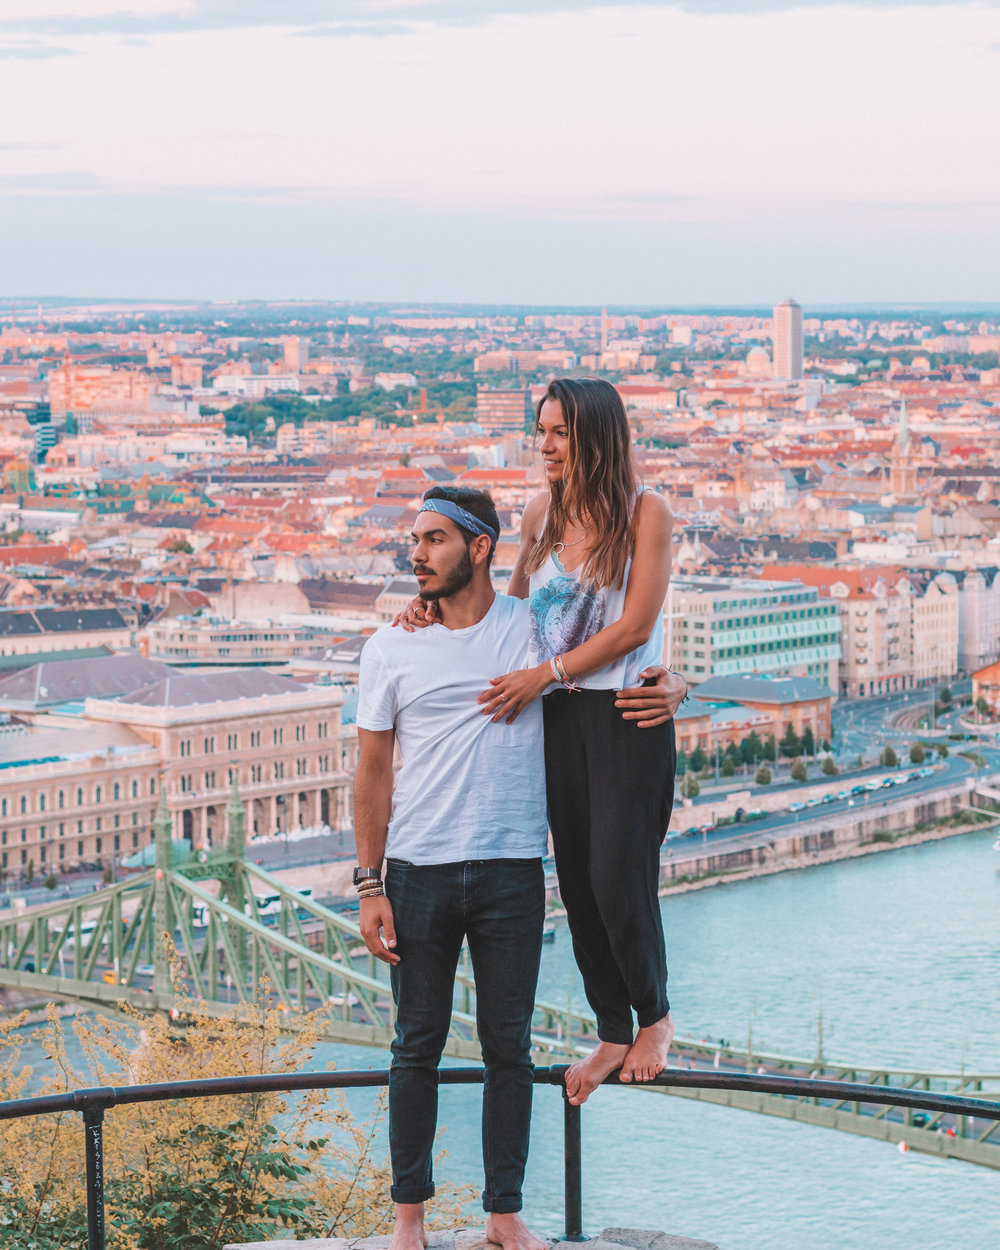 best sunset view citadella budapest beautiful photos lightroom photoshop travel couple freeoversea interrail europe